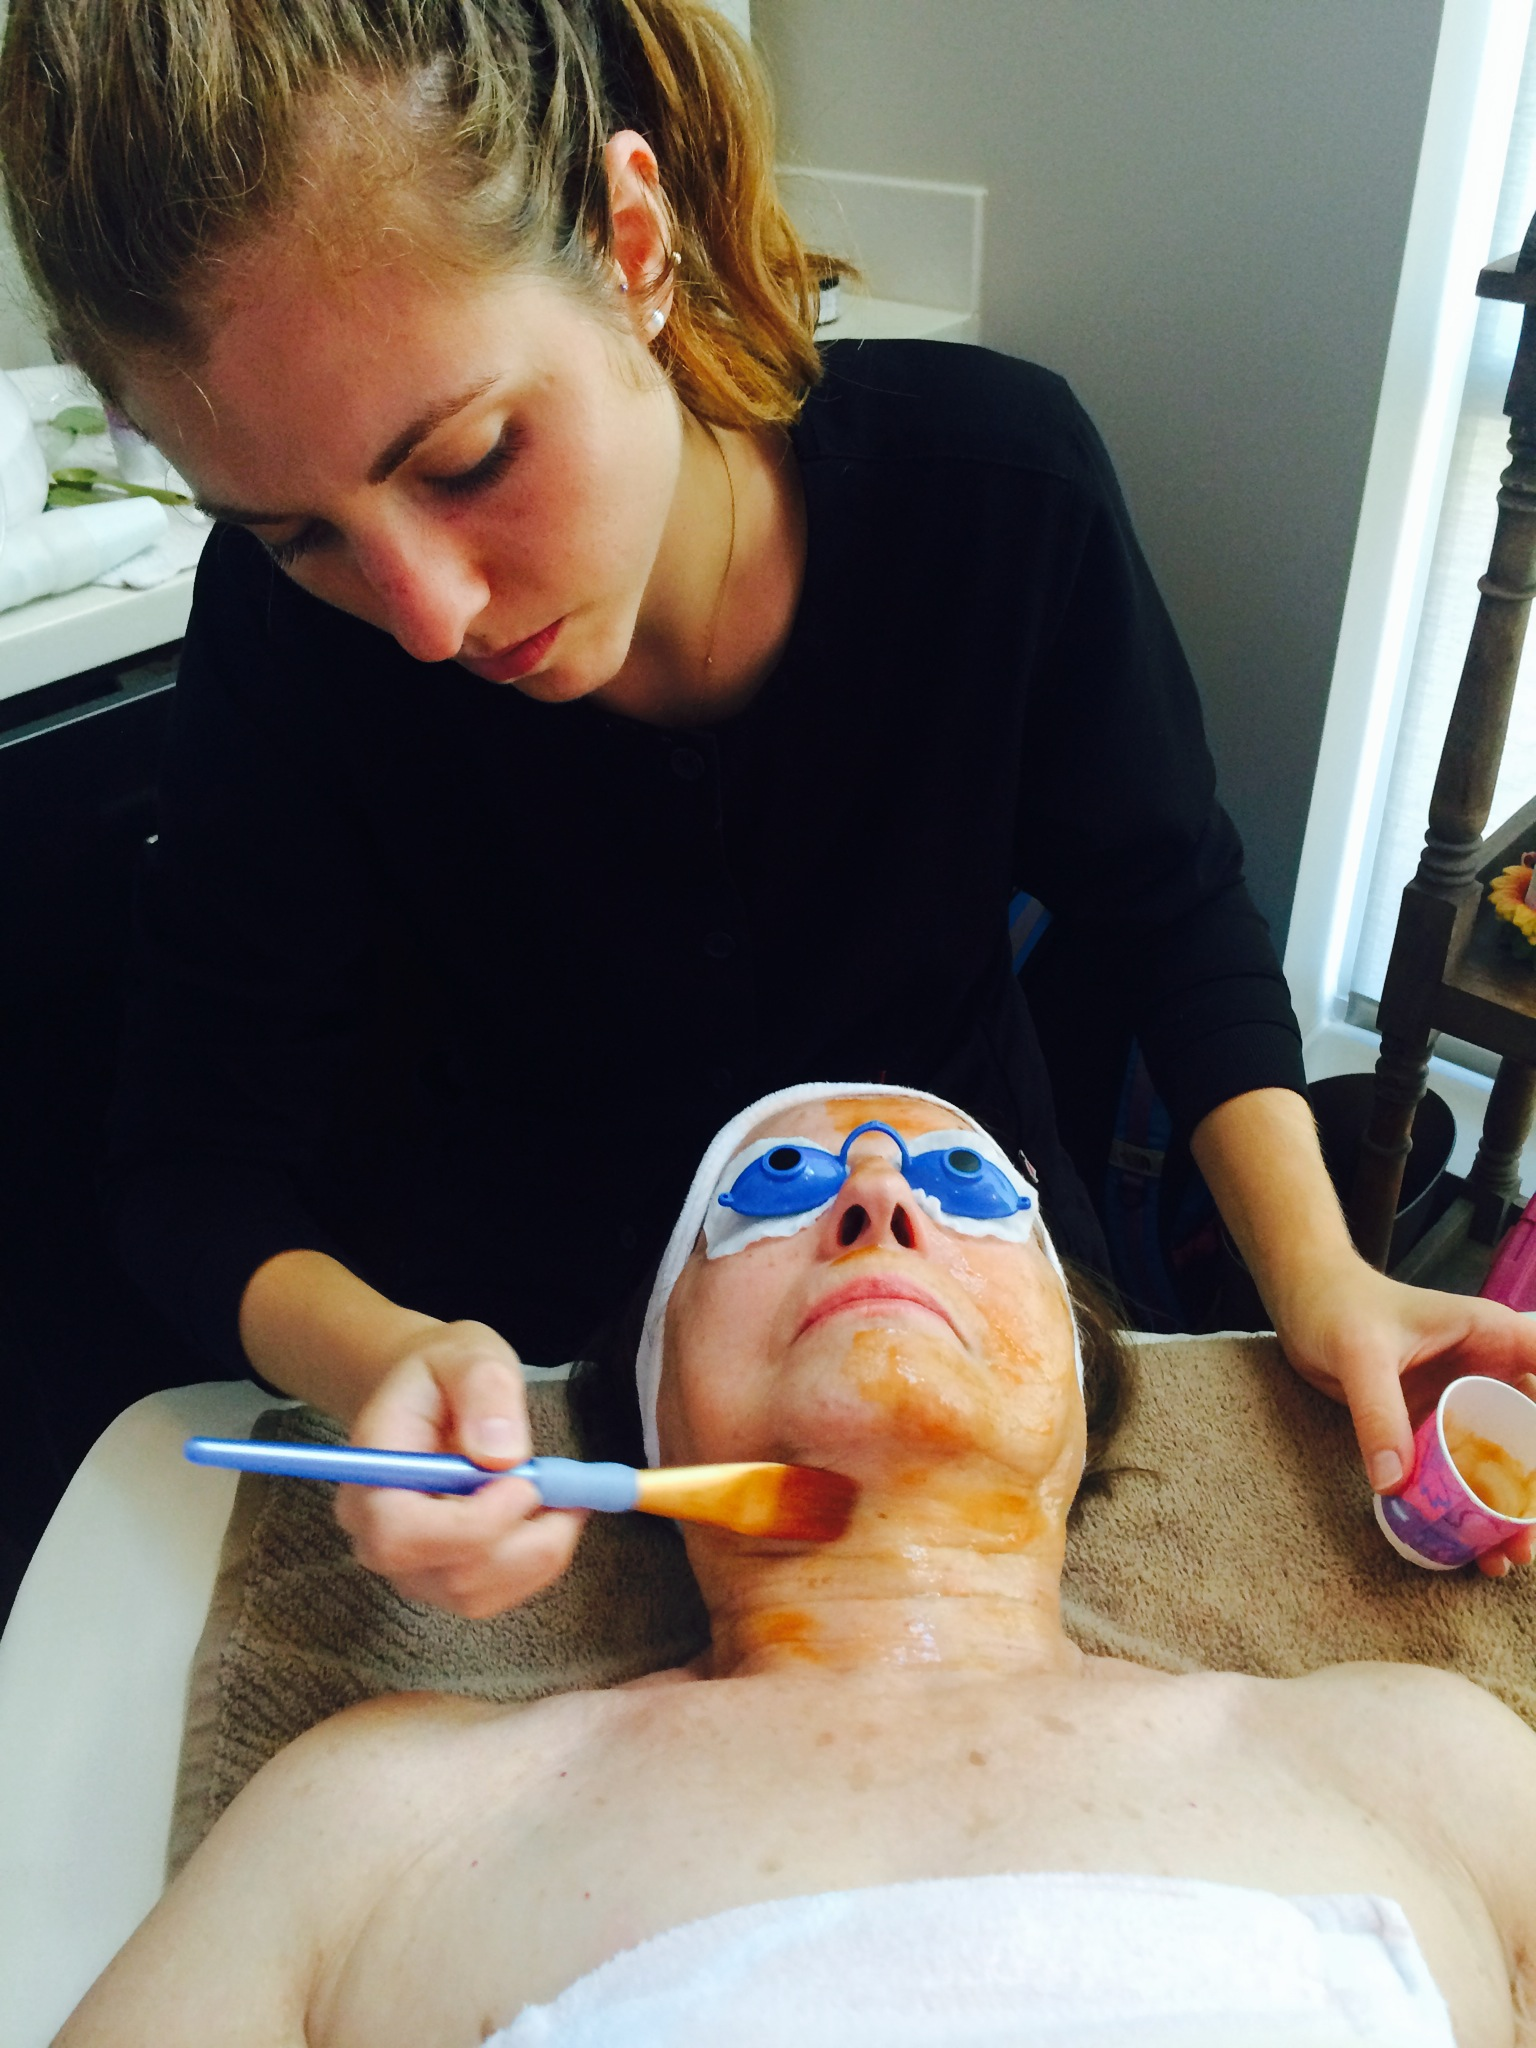 Esthetician with a patient during a Facial session (photo).